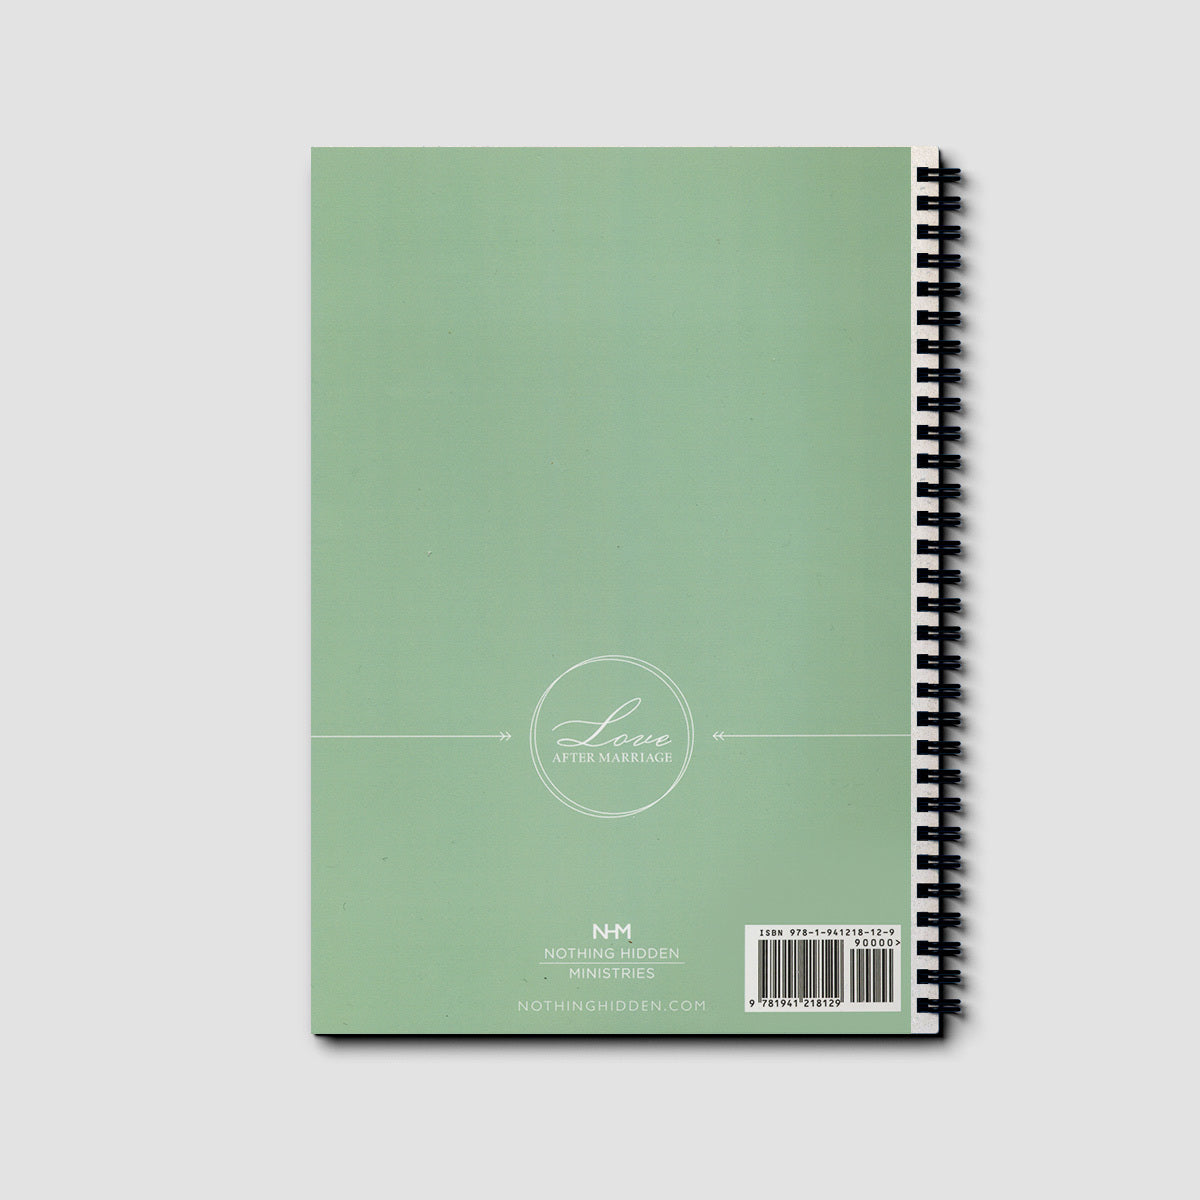 LAM 2 Workshop Workbook